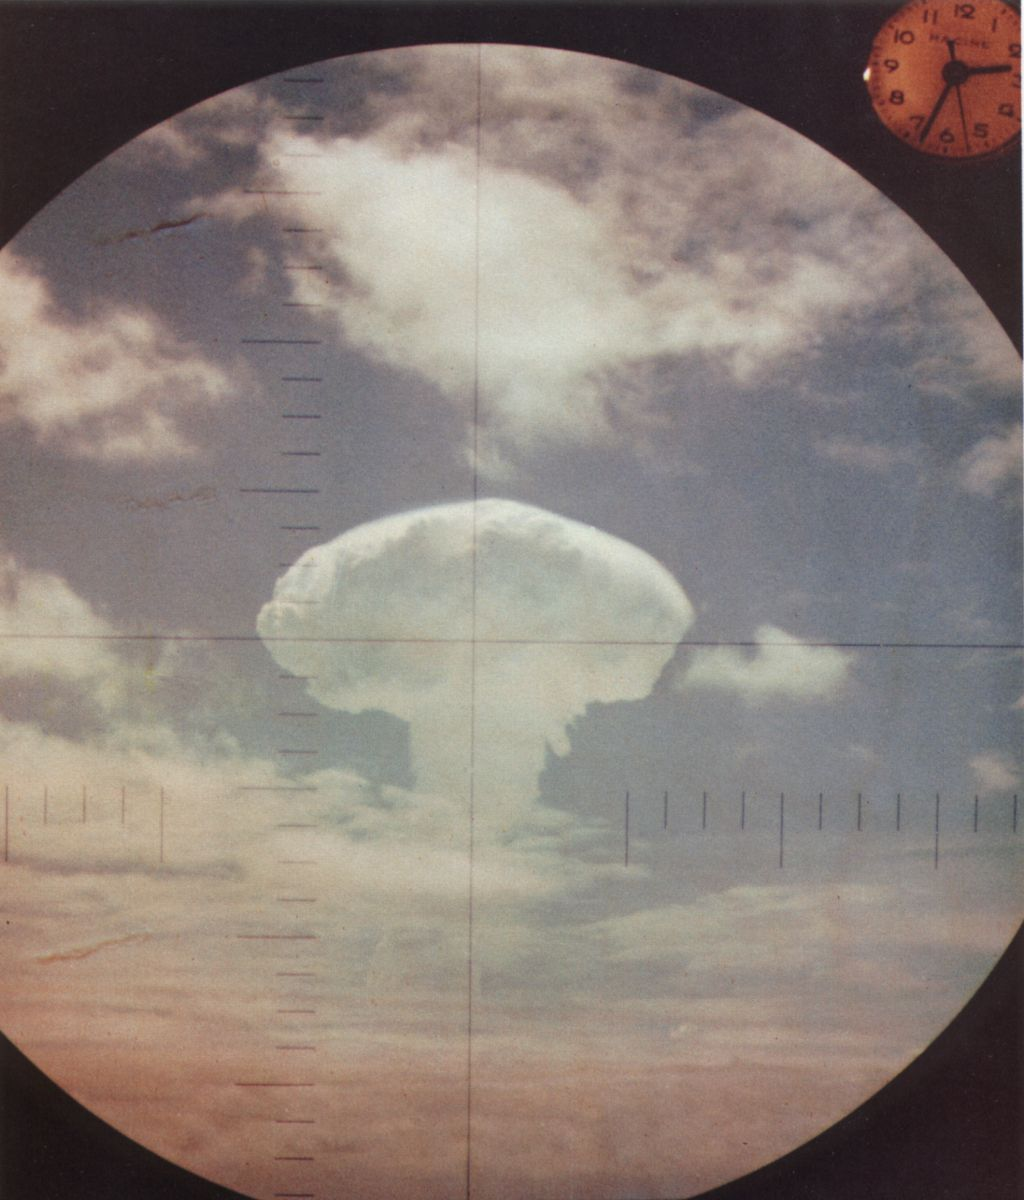 A 1962 nuclear explosion as seen through the periscope of a U.S. Navy submarine.